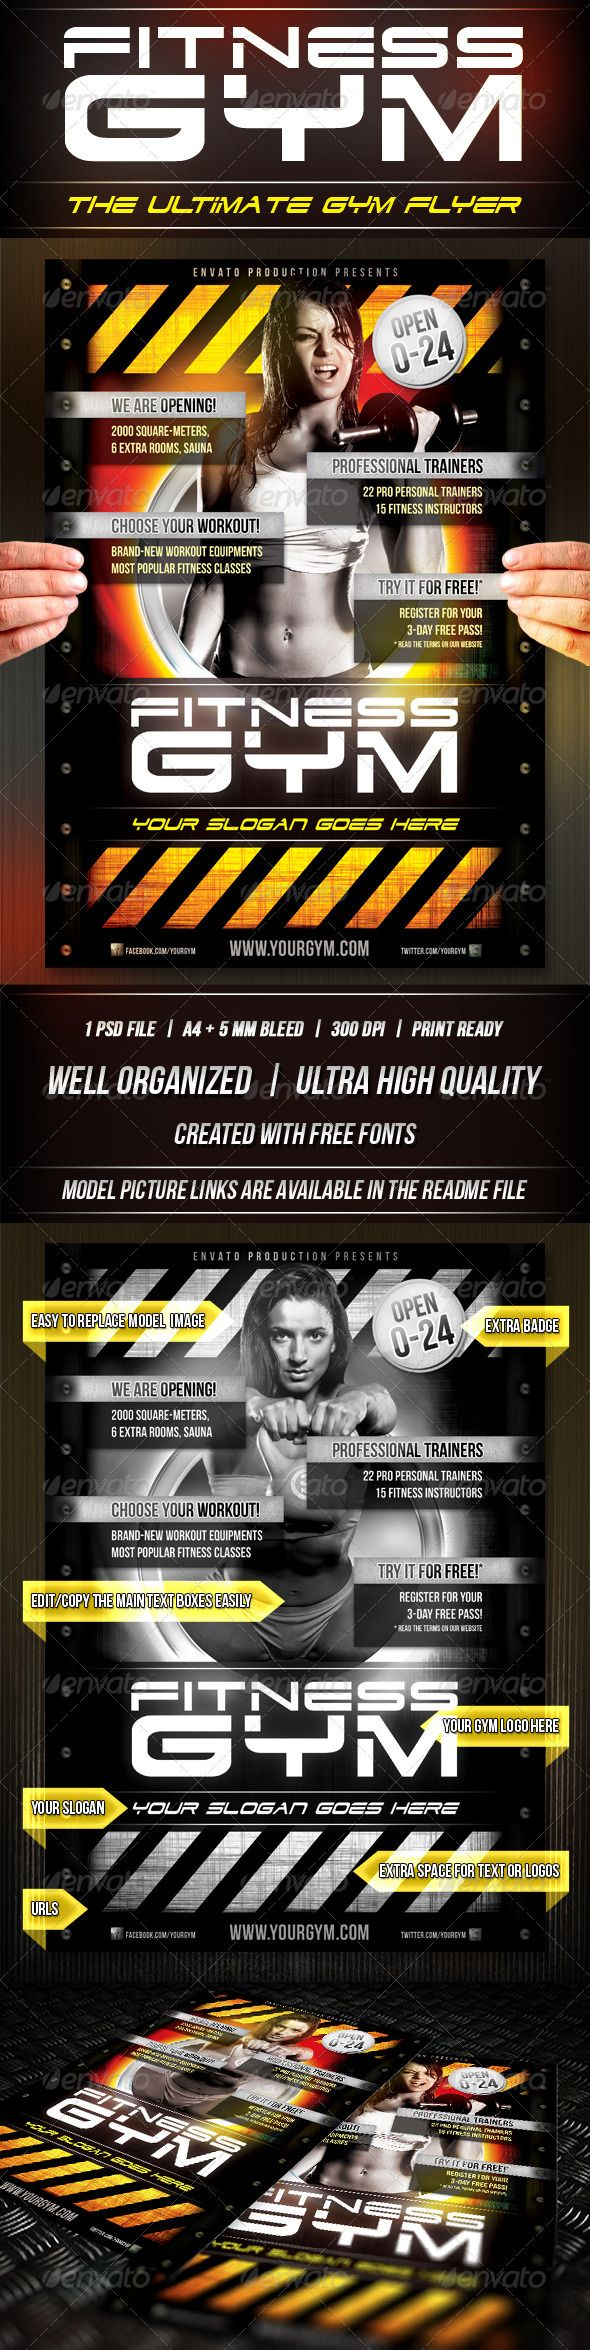 best images about gym advertisement business fitness gym flyer template